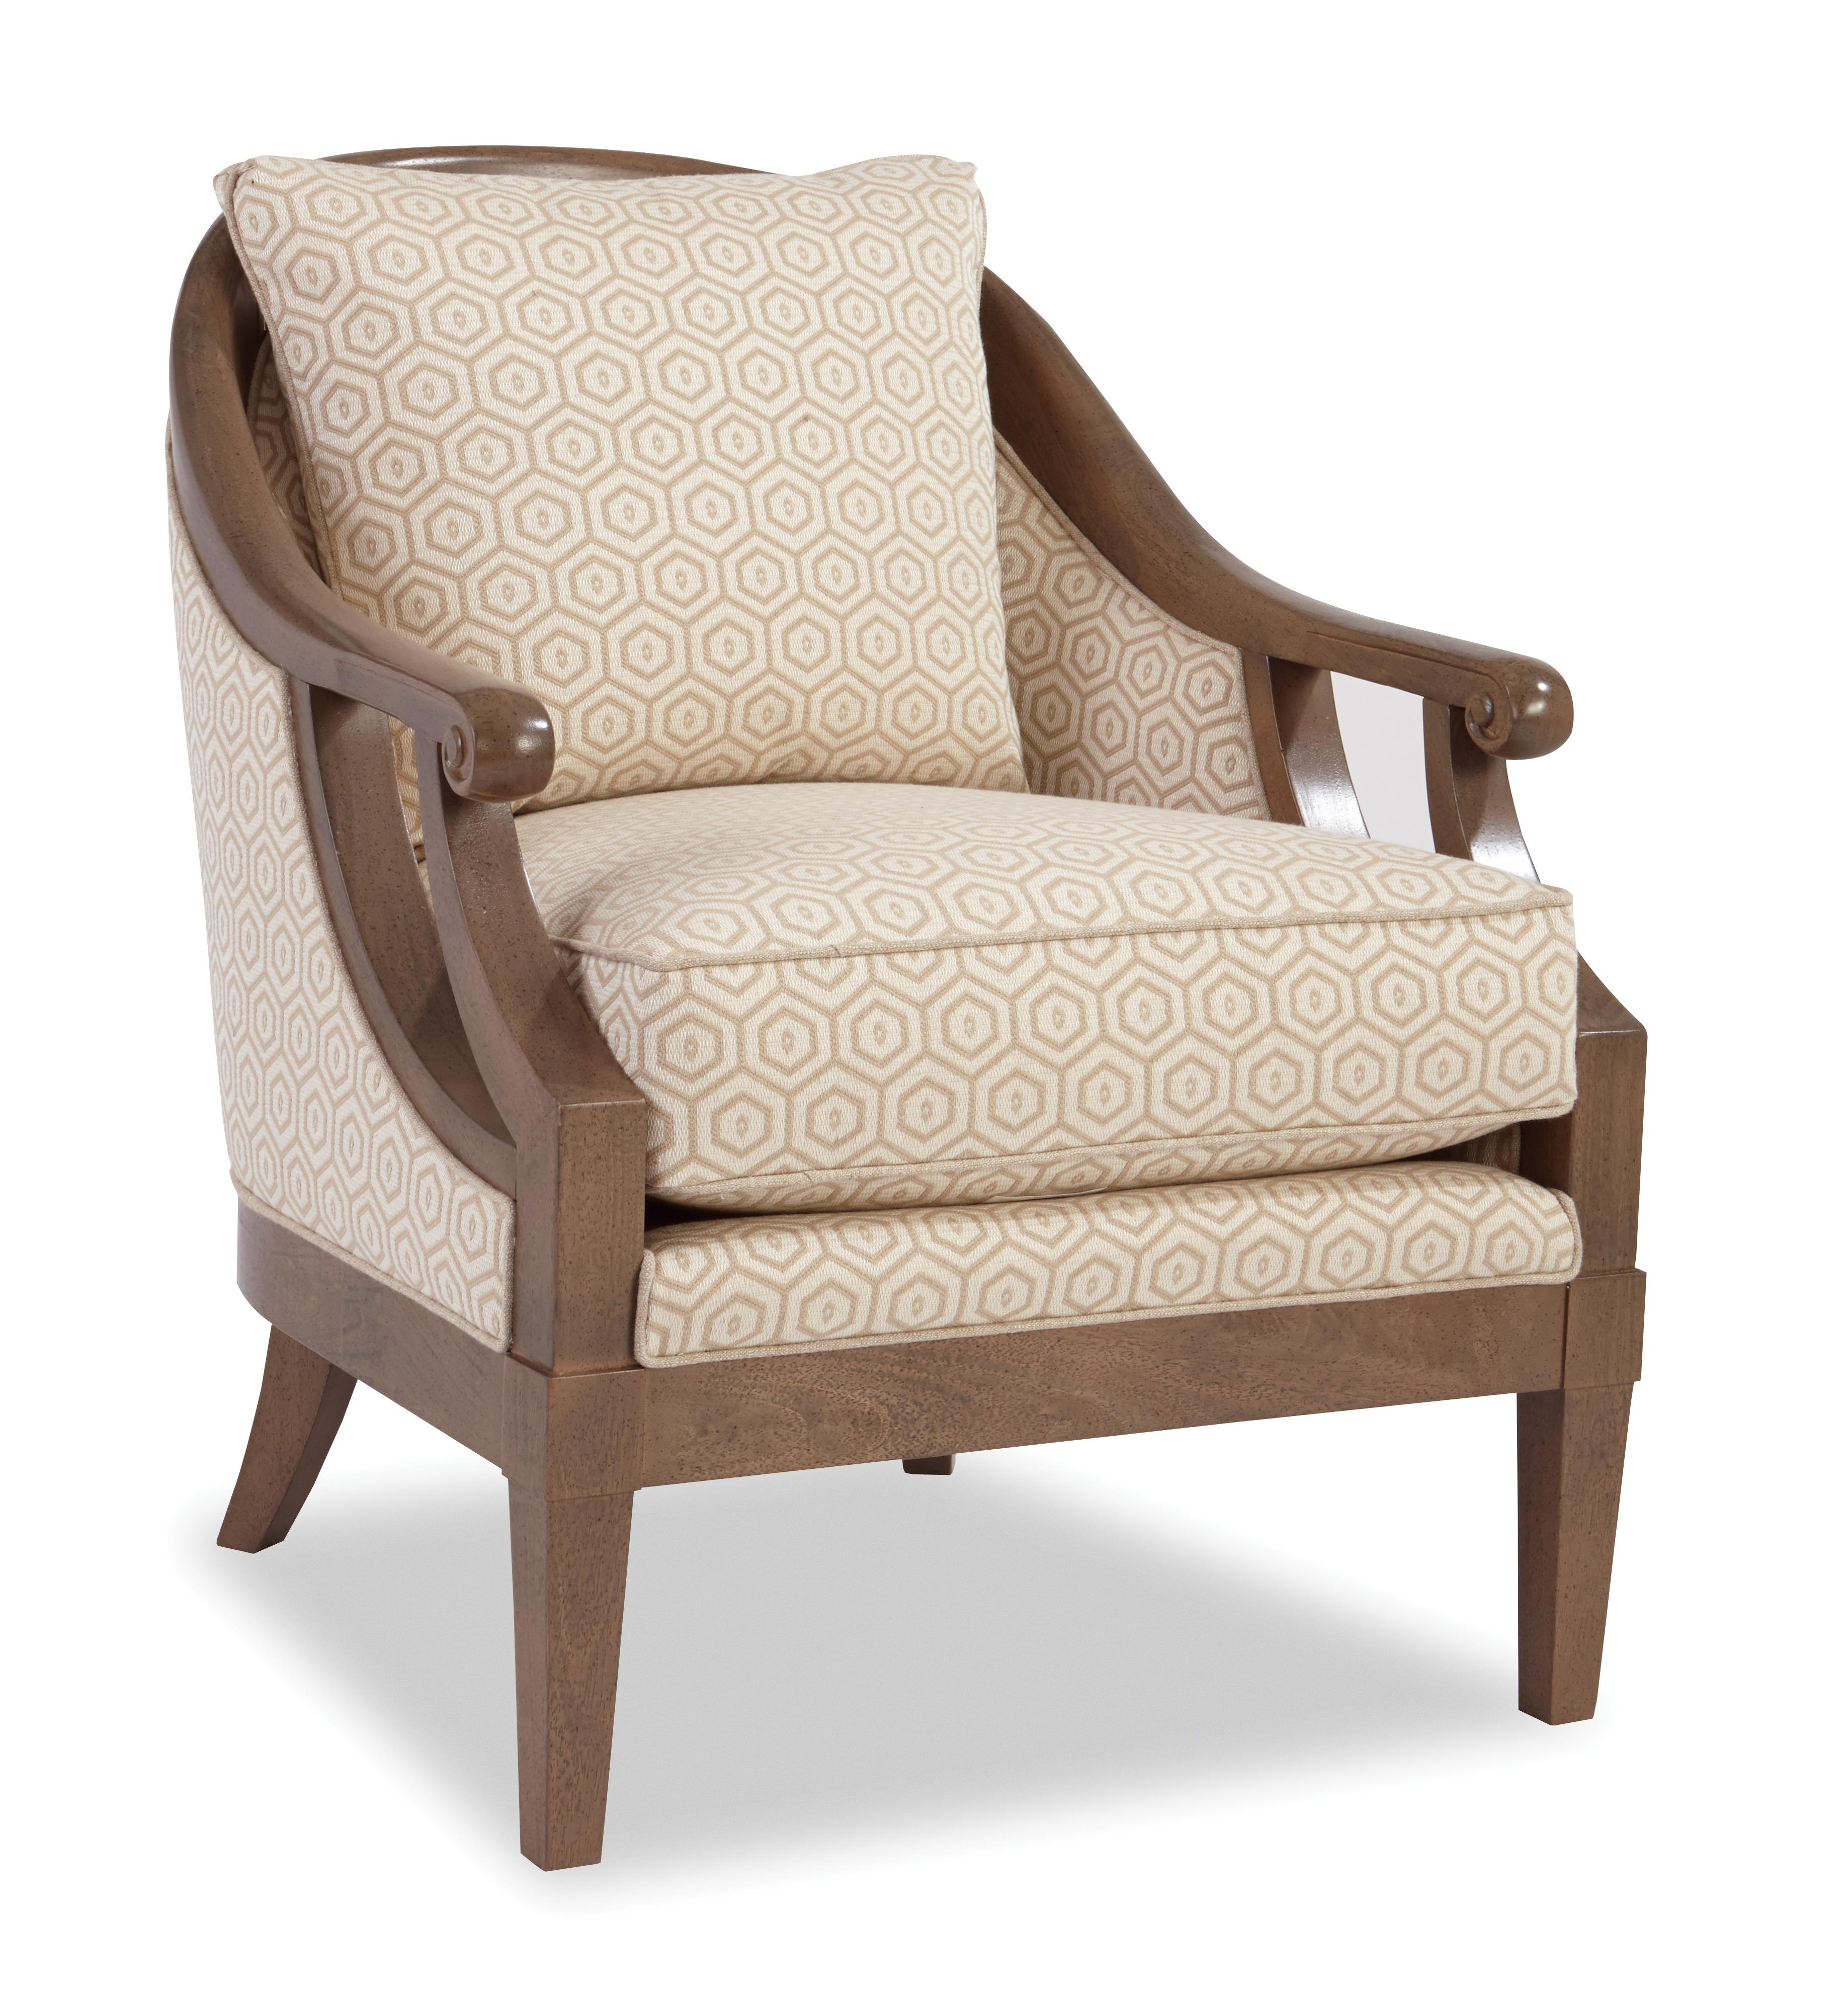 accent chairs with arms sleeping in a chair gif traditional wood framed scroll by